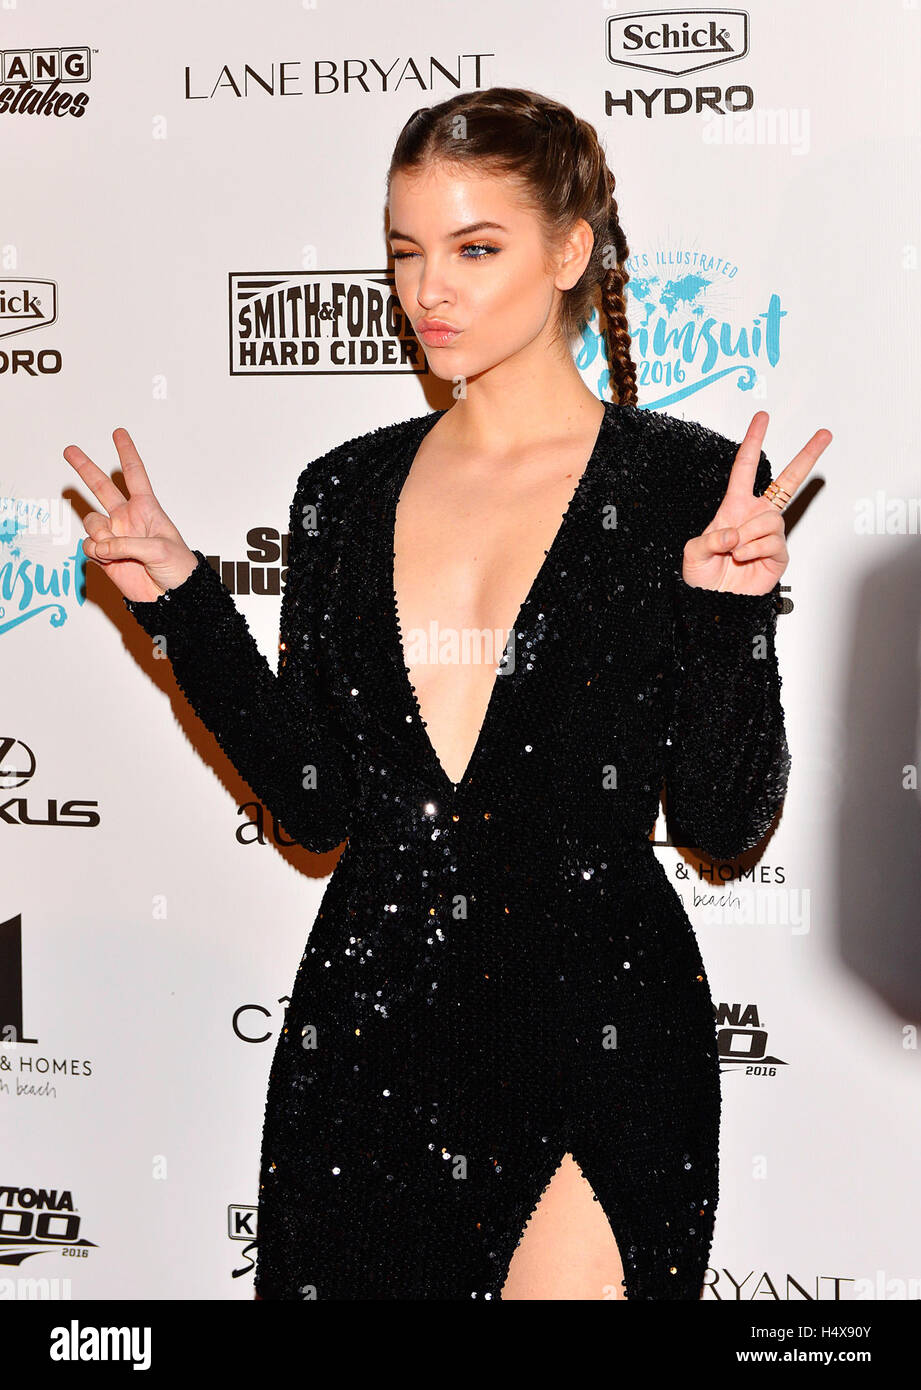 53db1e2de4 Model Barbara Palvin attends the red carpet for Sports Illustrated Swimsuit  2016 Launch Events at 1 Hotel & Homes South Beach on February 17, 2016 in  Miami ...